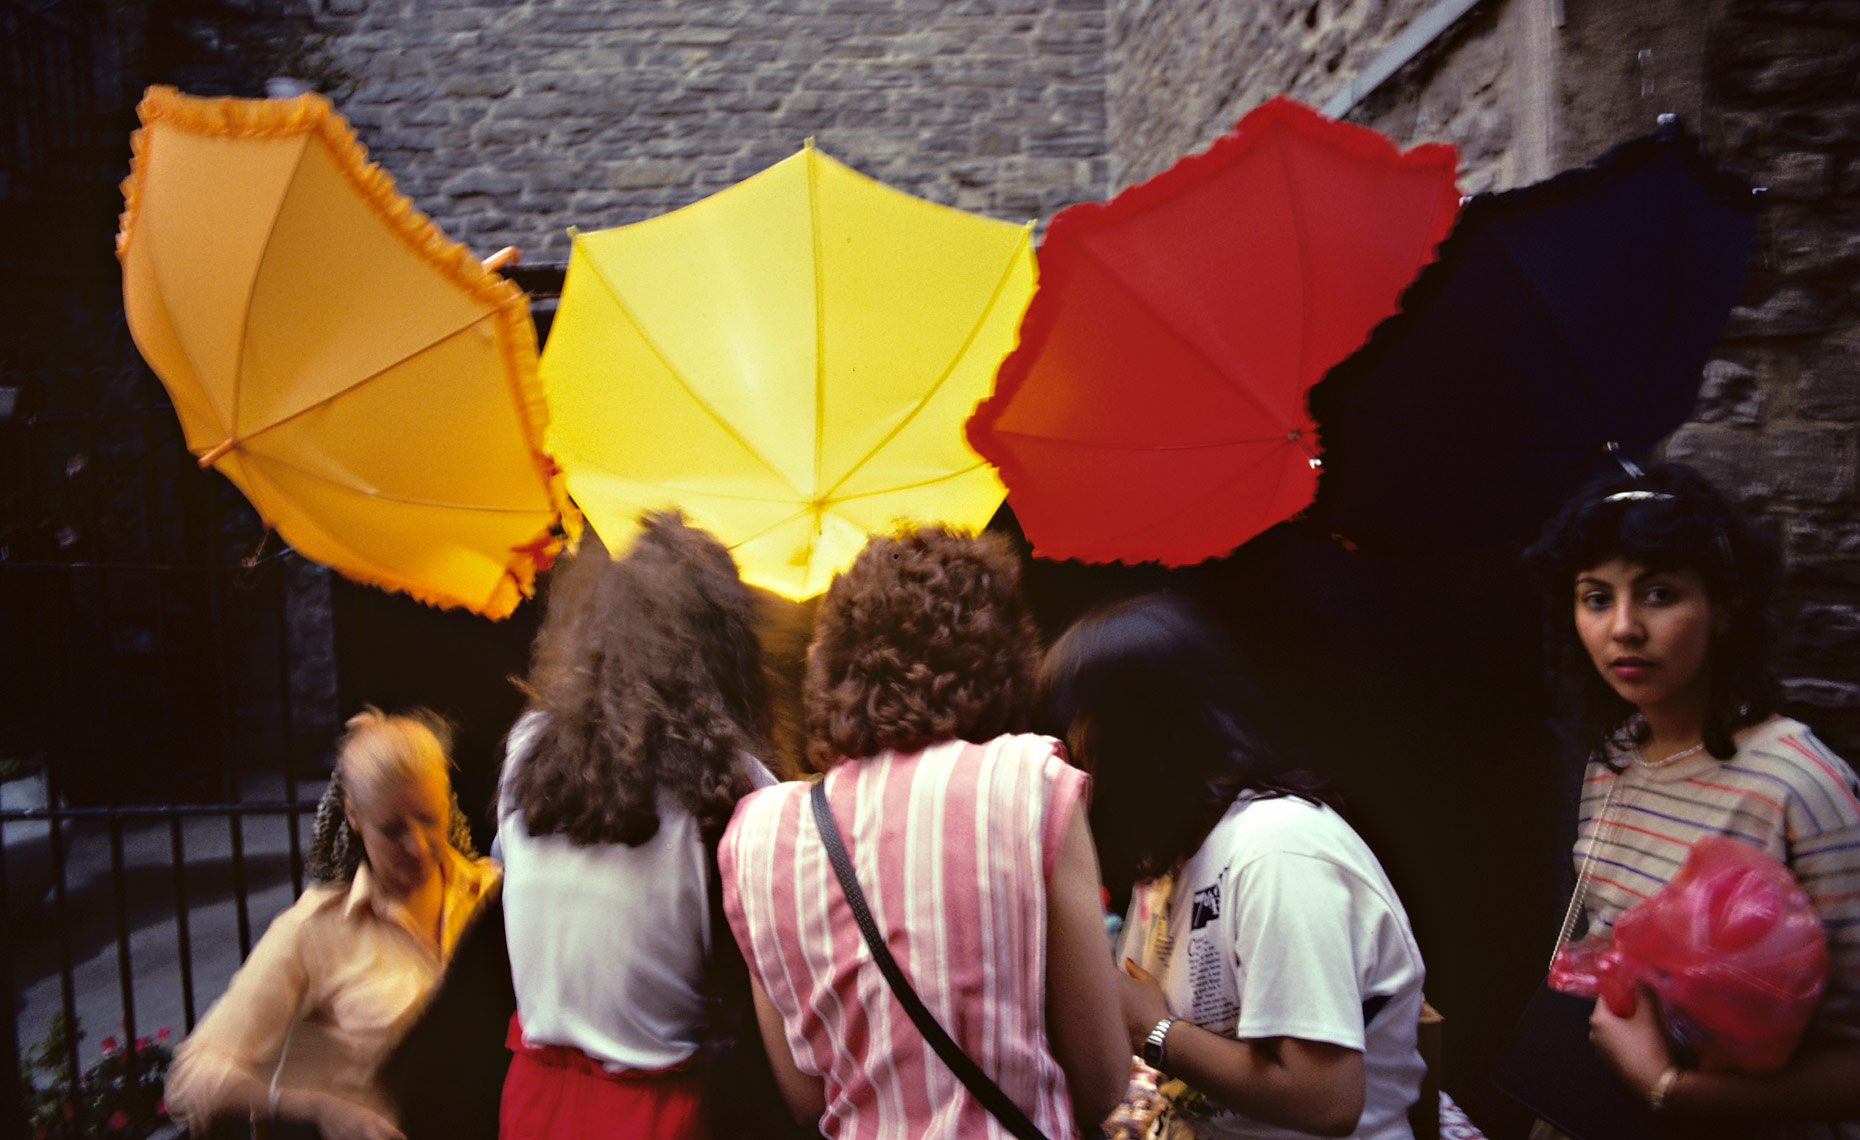 Girls-with-umbrellas